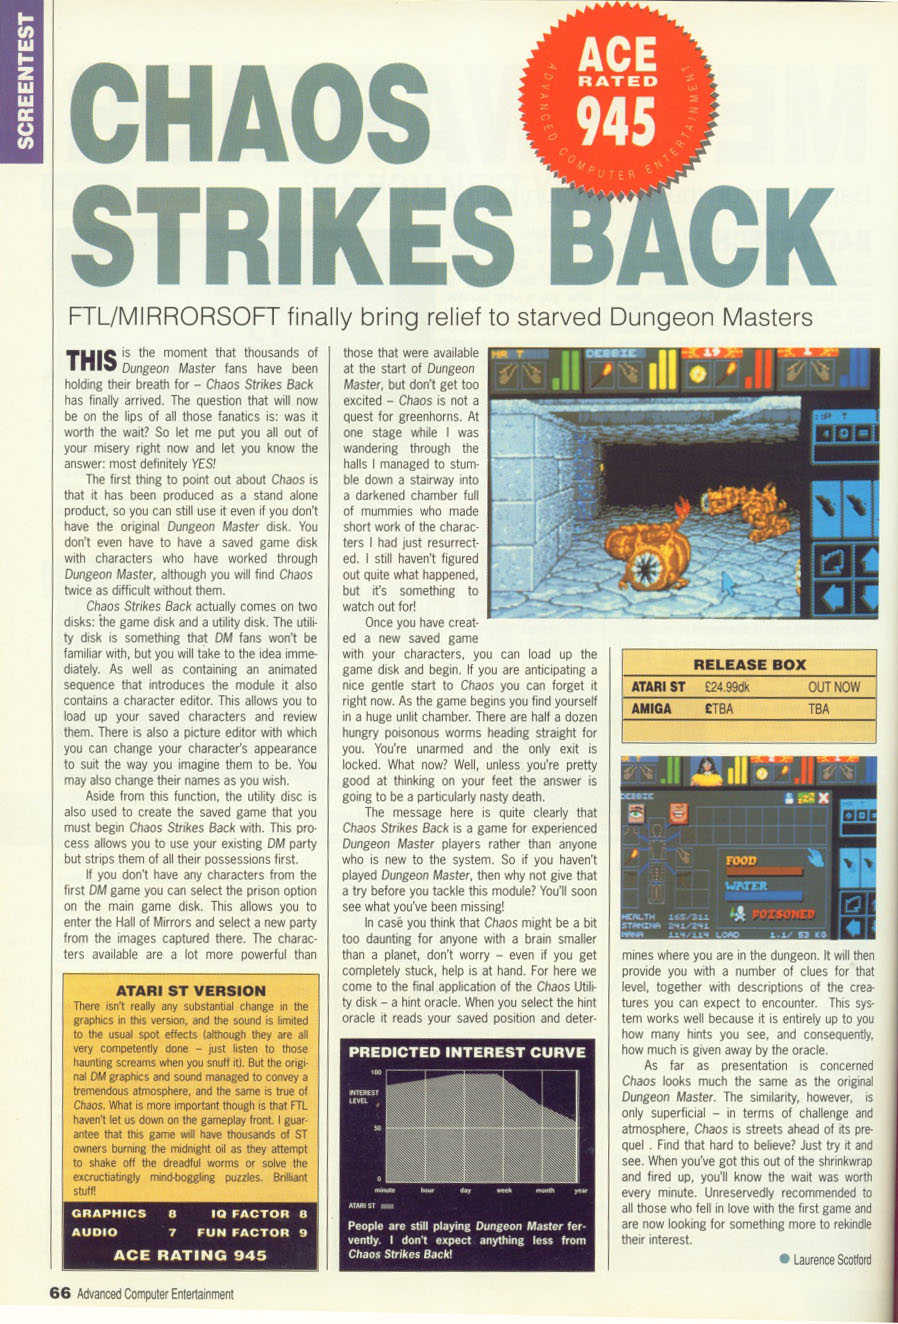 Chaos Strikes Back Review published in British magazine 'Advanced Computer Entertainment (ACE)', Issue #29, February 1990, Pages 66